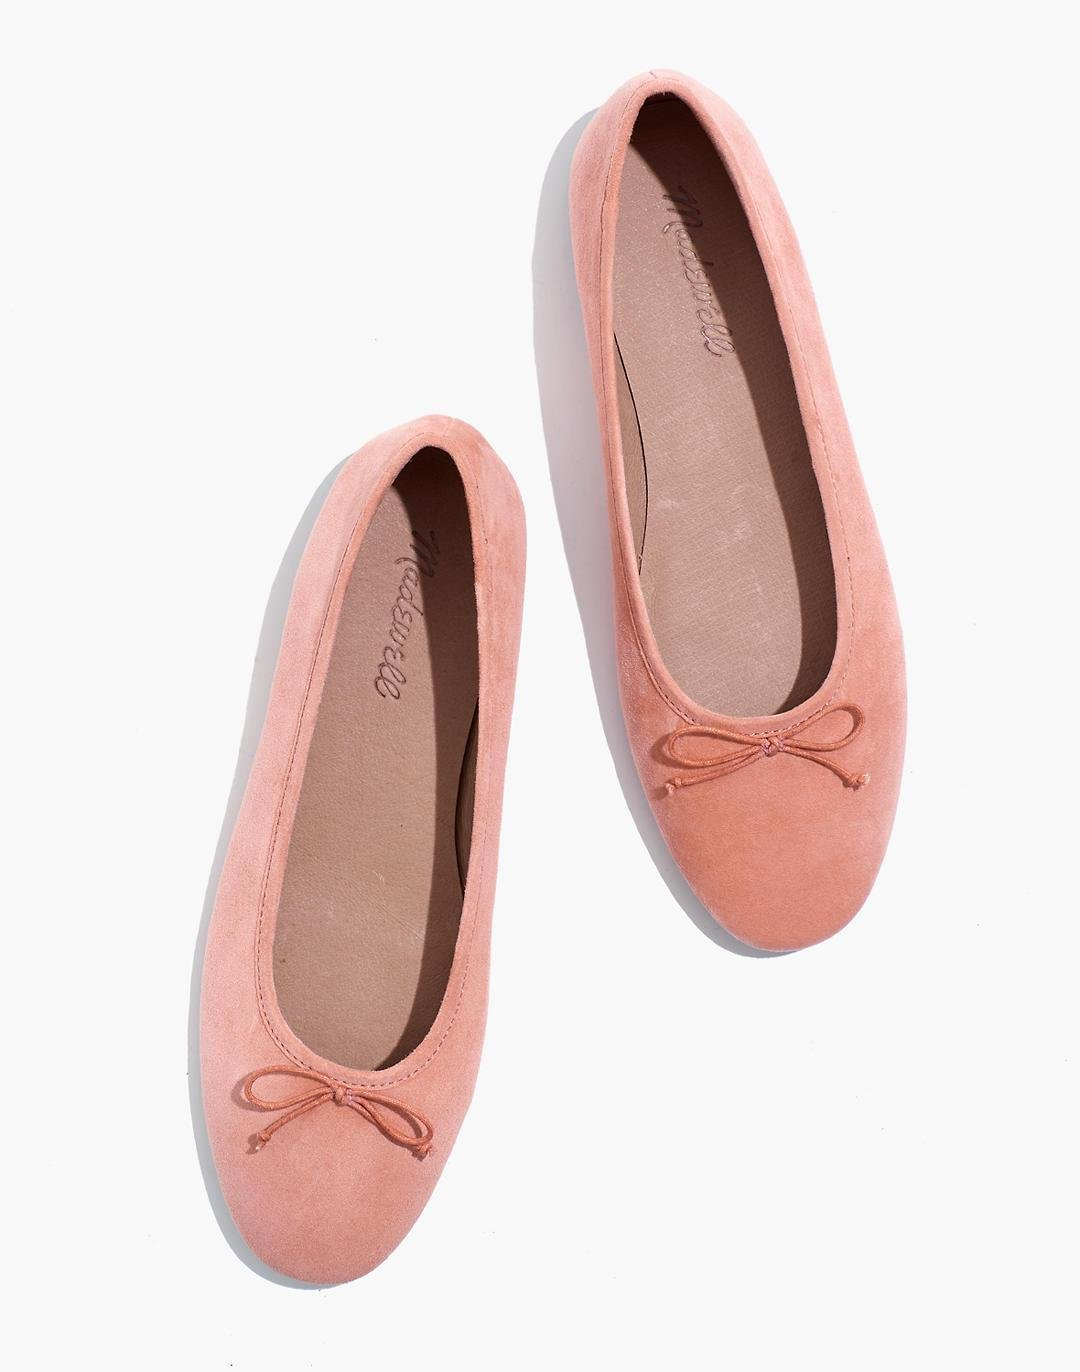 The Adelle Ballet Flat in Suede